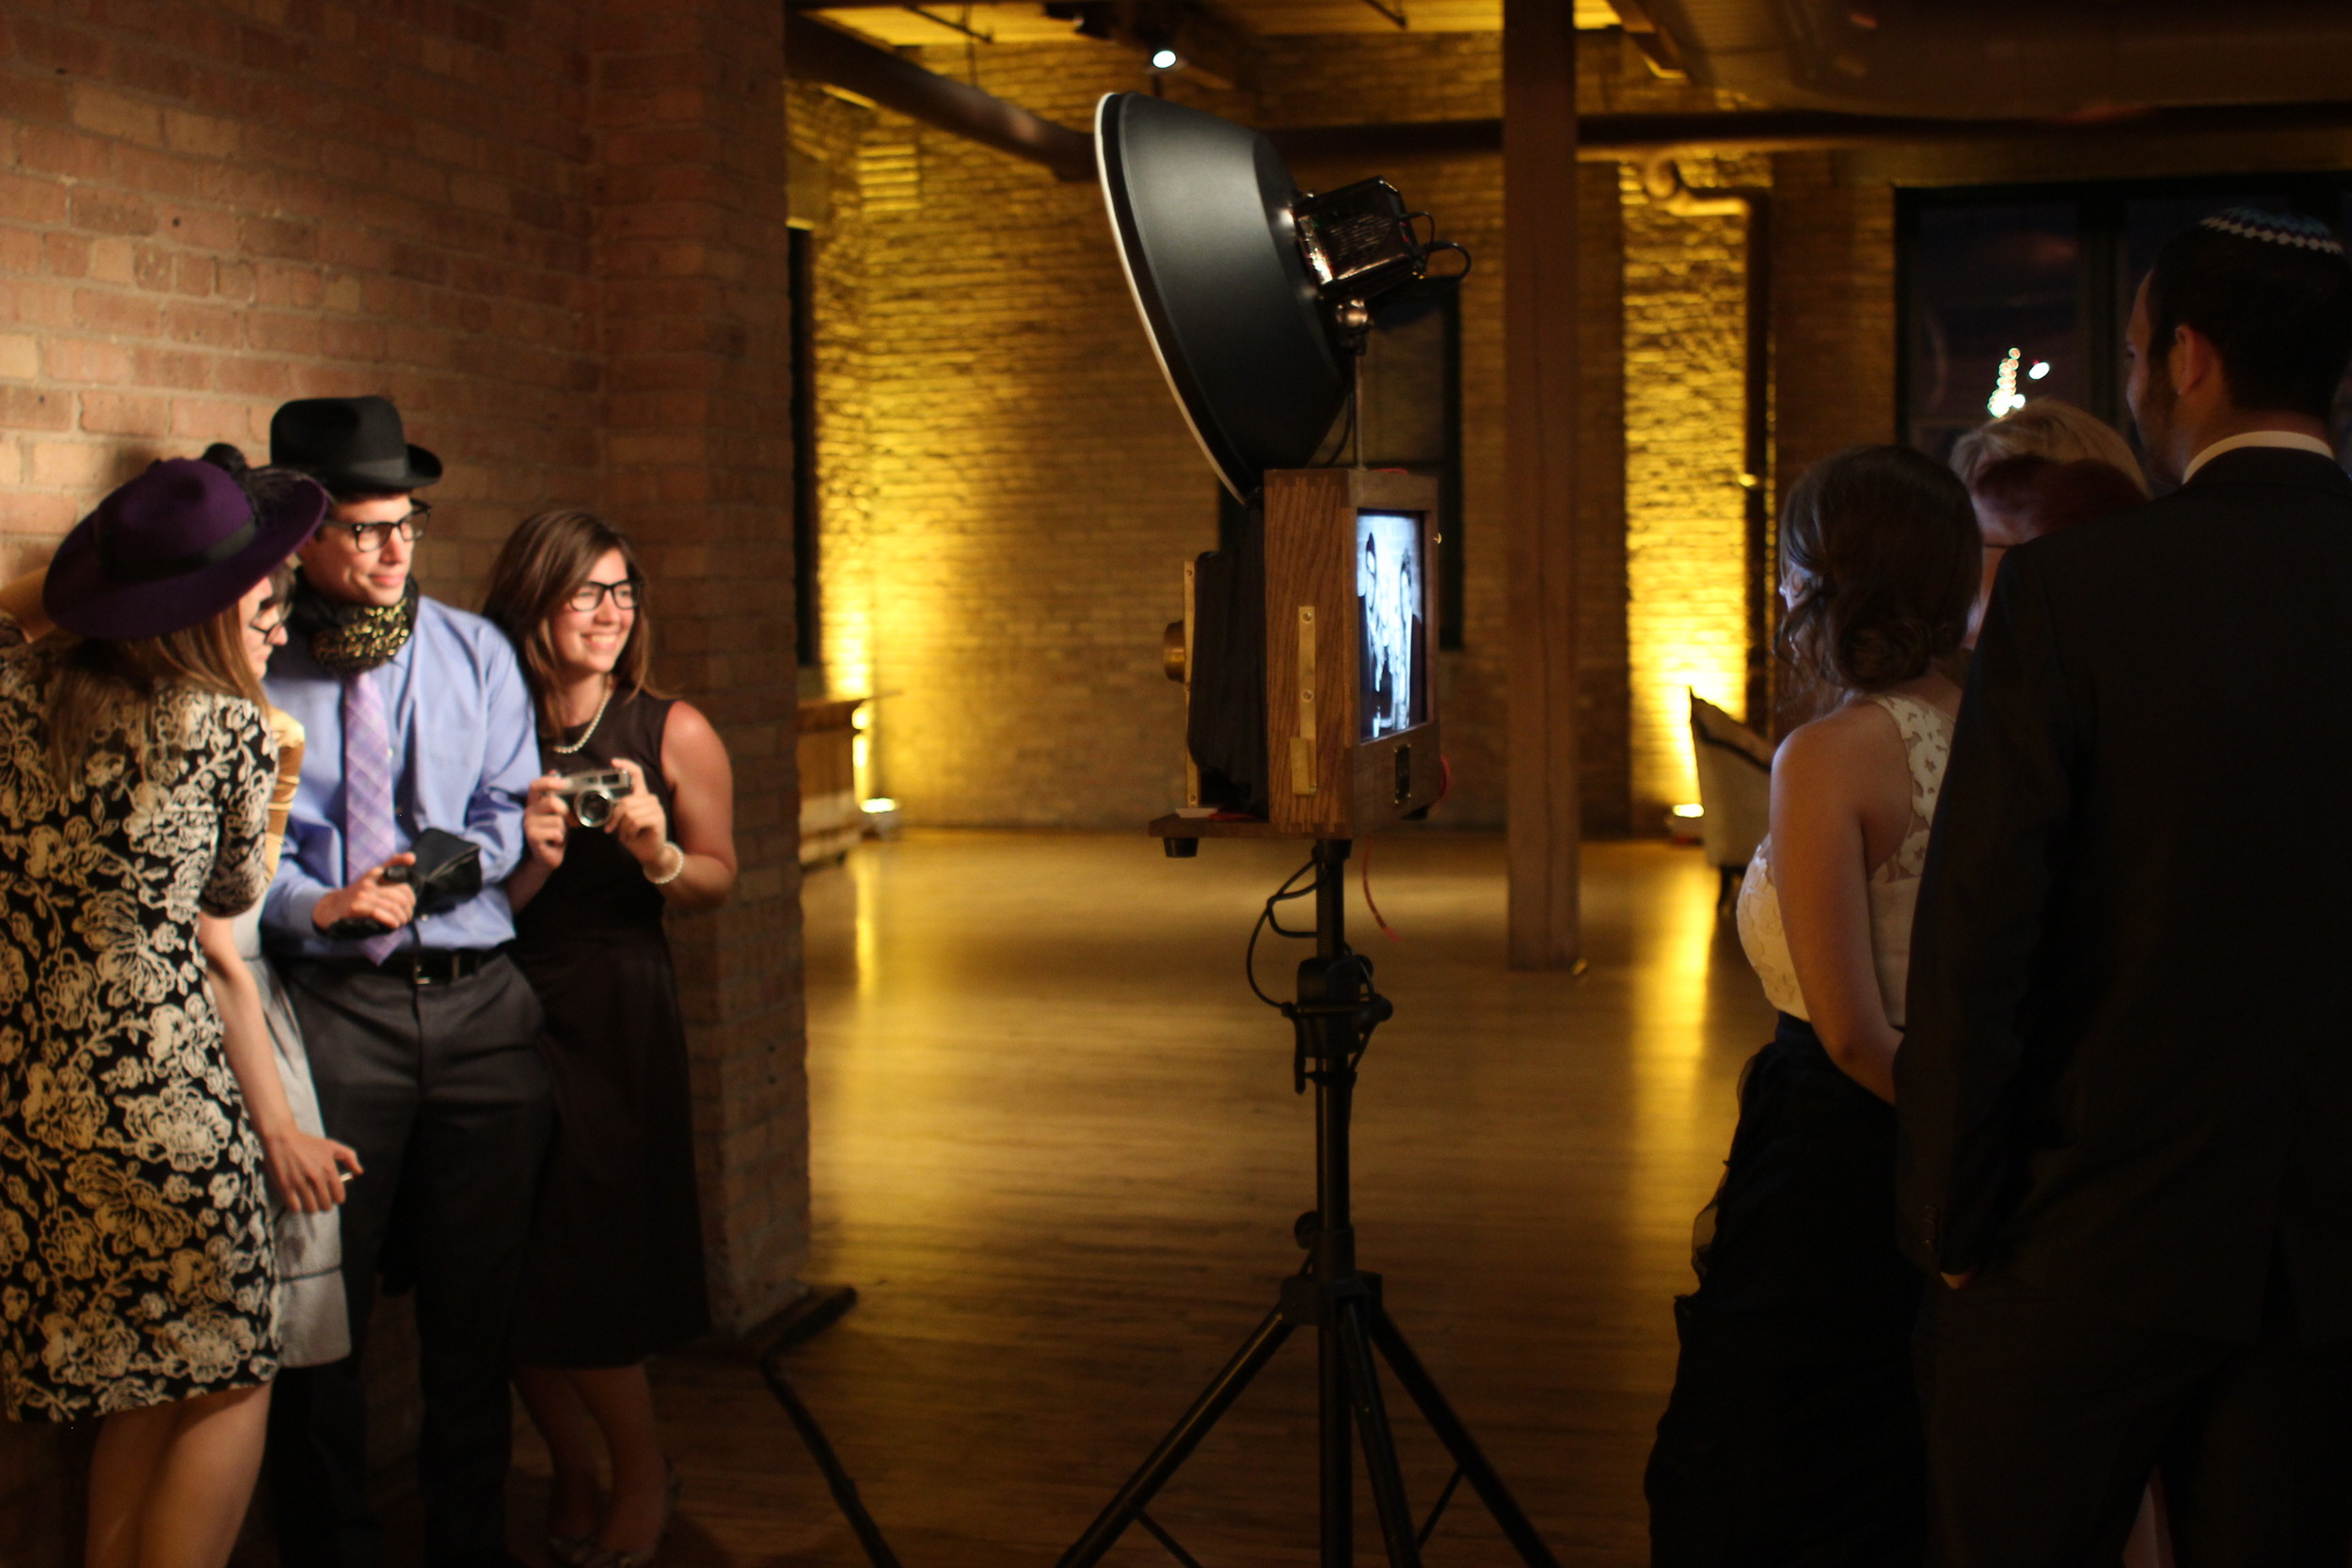 The Fotio photo booth in full action in the Skyline Loft at Bridgeport Art Center wedding.